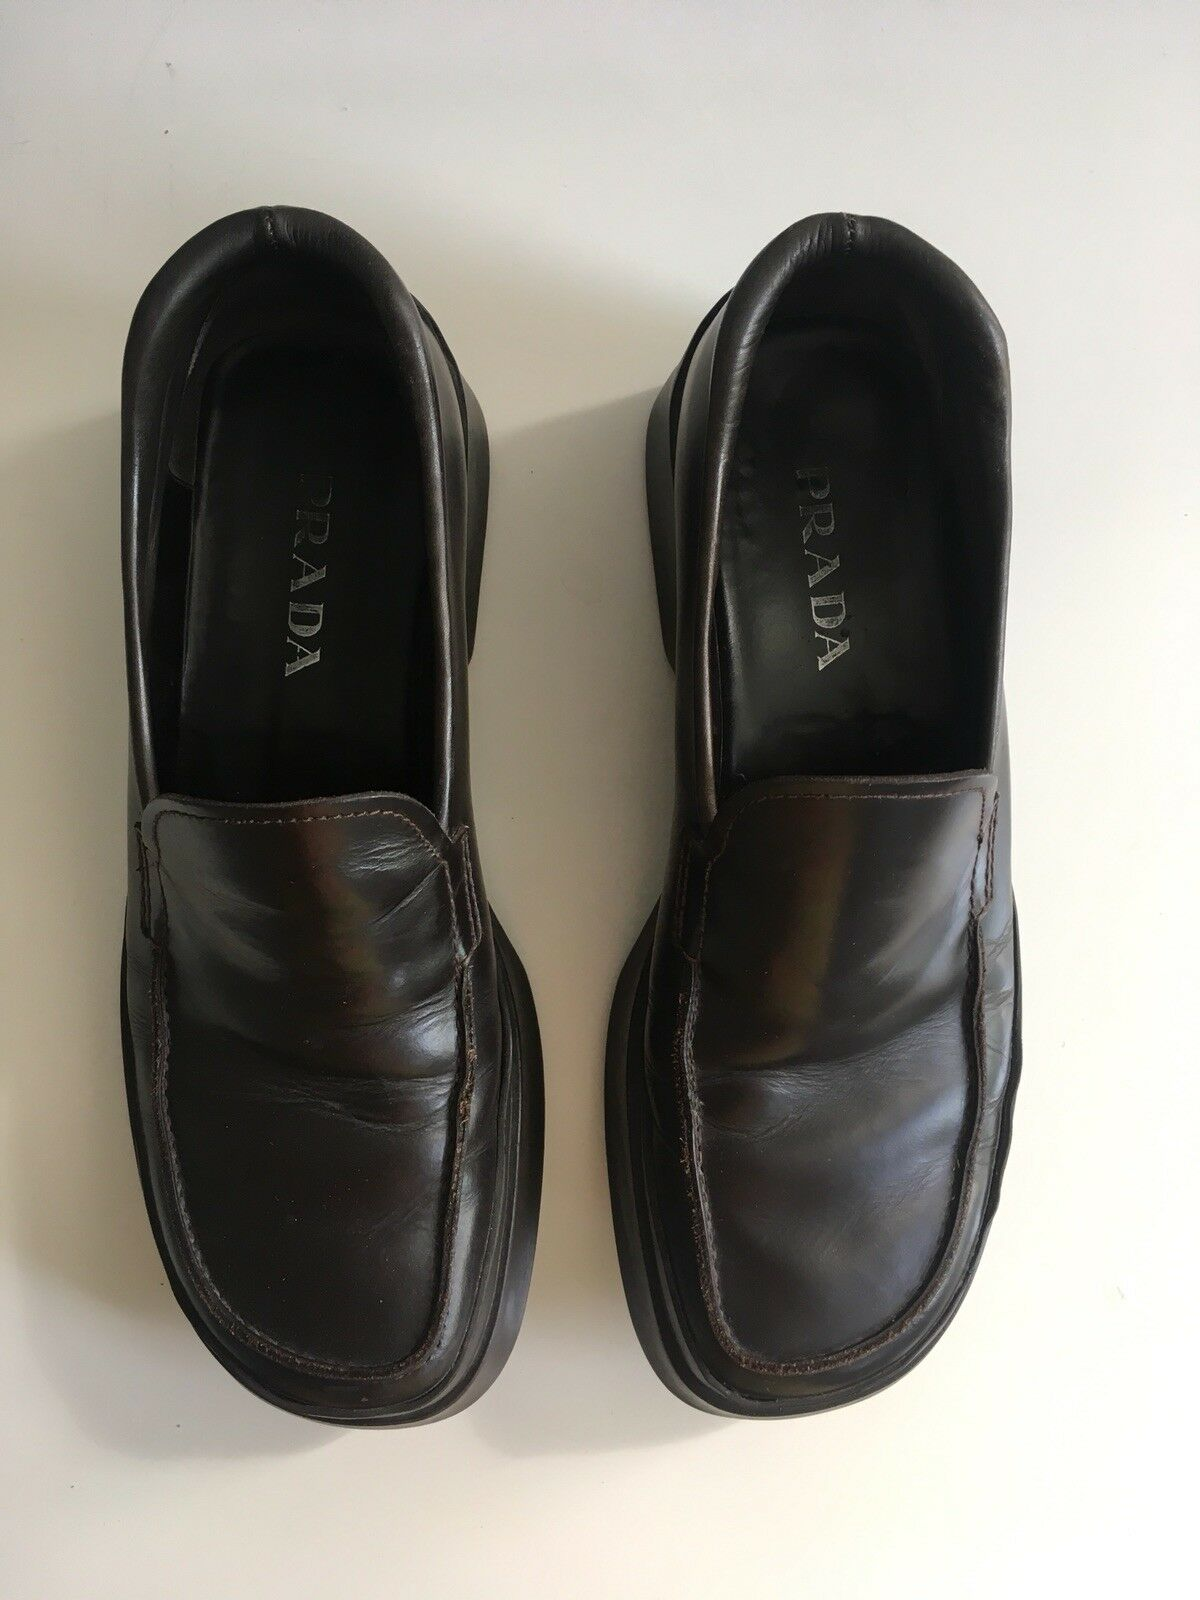 PRADA Chocolate Thick Sole Loafers Sz 9.5 made in Italy